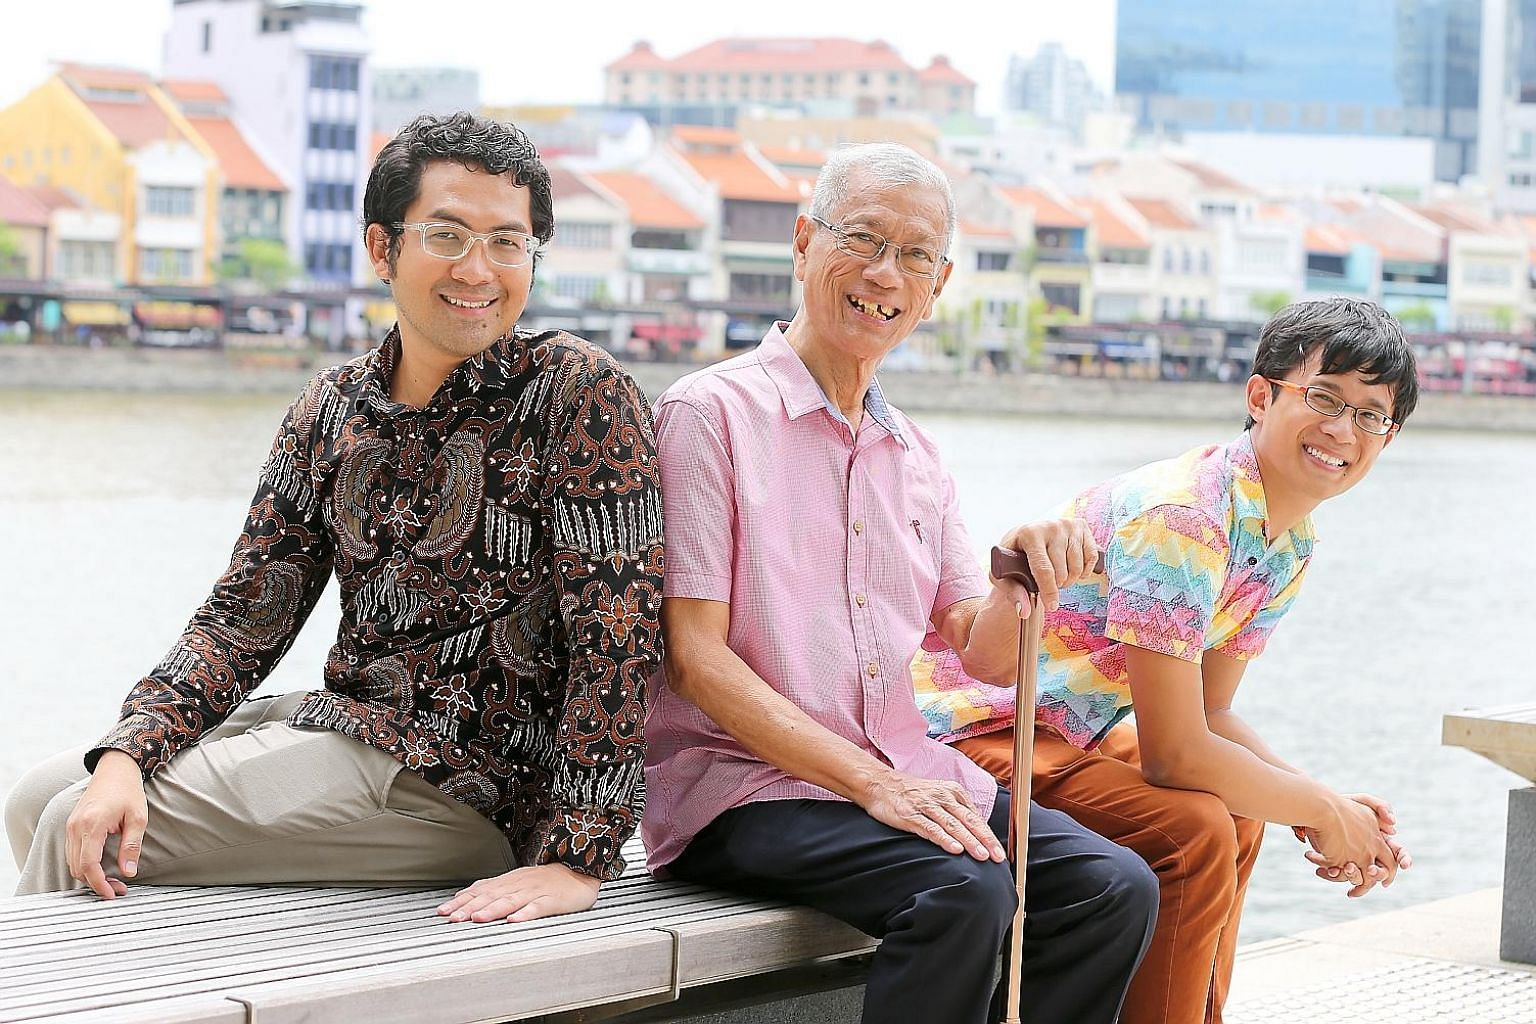 (From left) Javanese-language representative Haider Sahle, Kristang representative Bernard Mesenas and event organiser Kevin Martens Wong hope to get participants interested in Singapore's linguistic diversity through activities such as language puzz